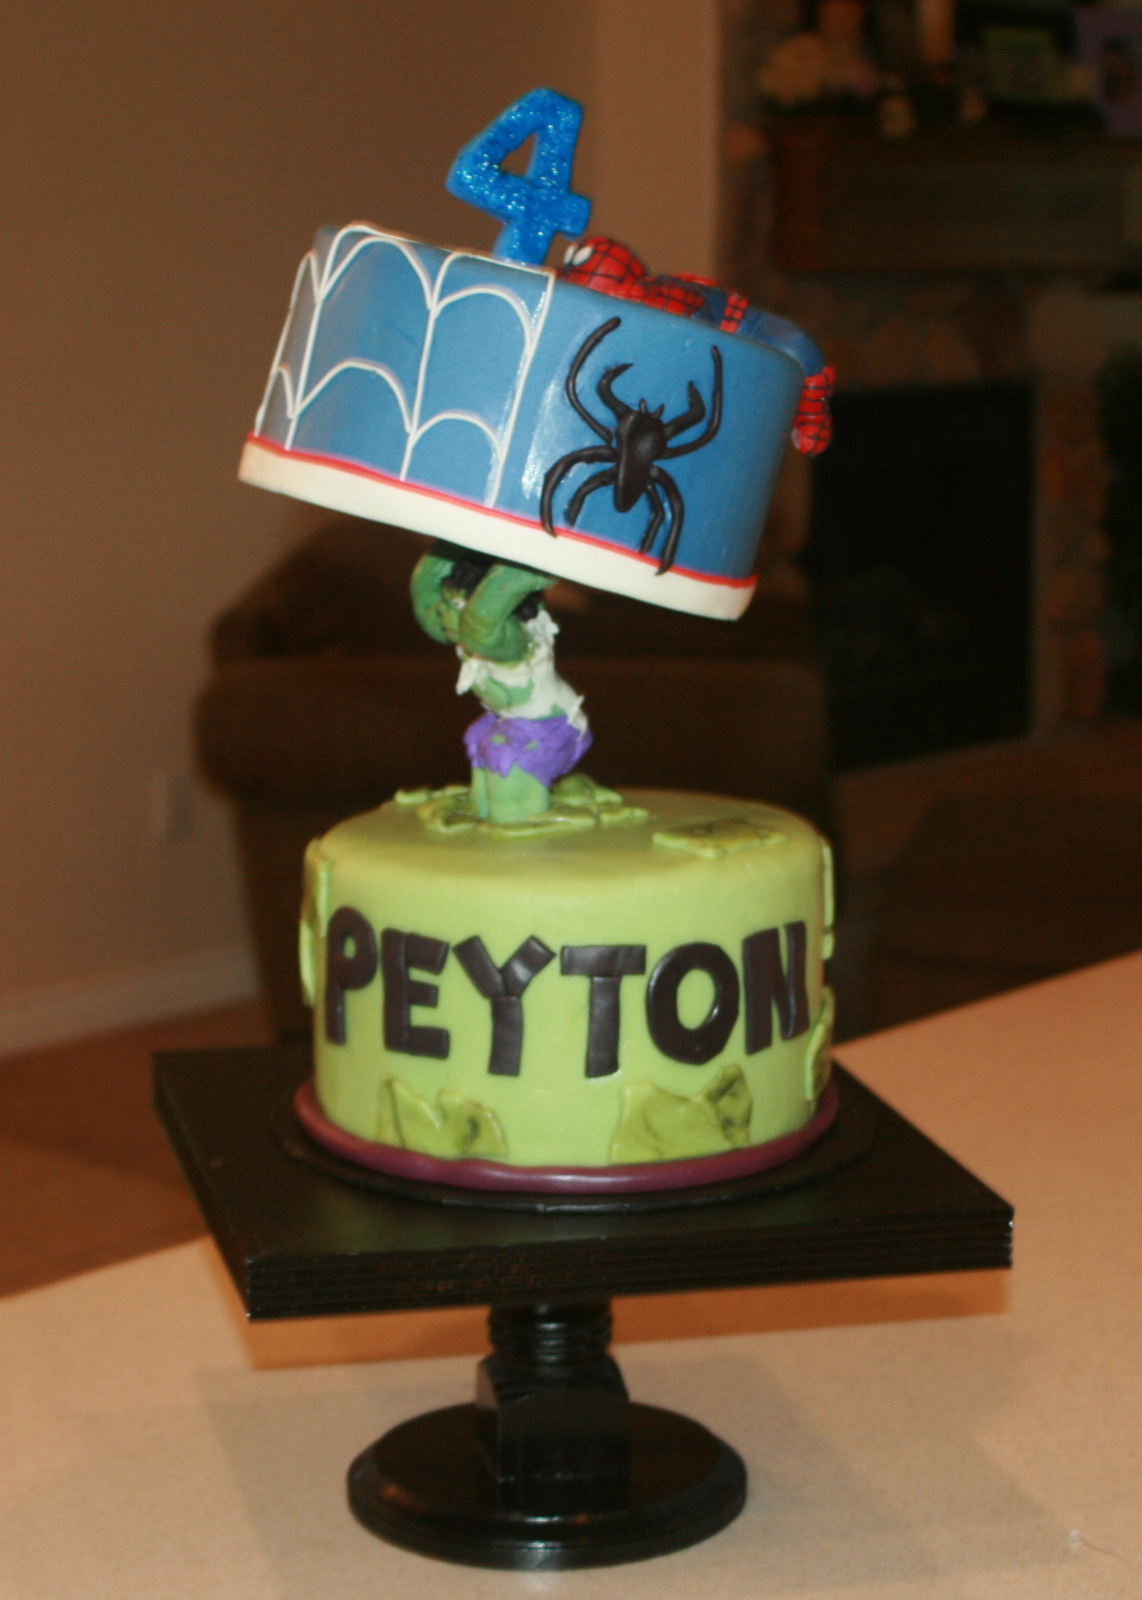 Genevre S Bakery Hulk And Spiderman Trial And Error